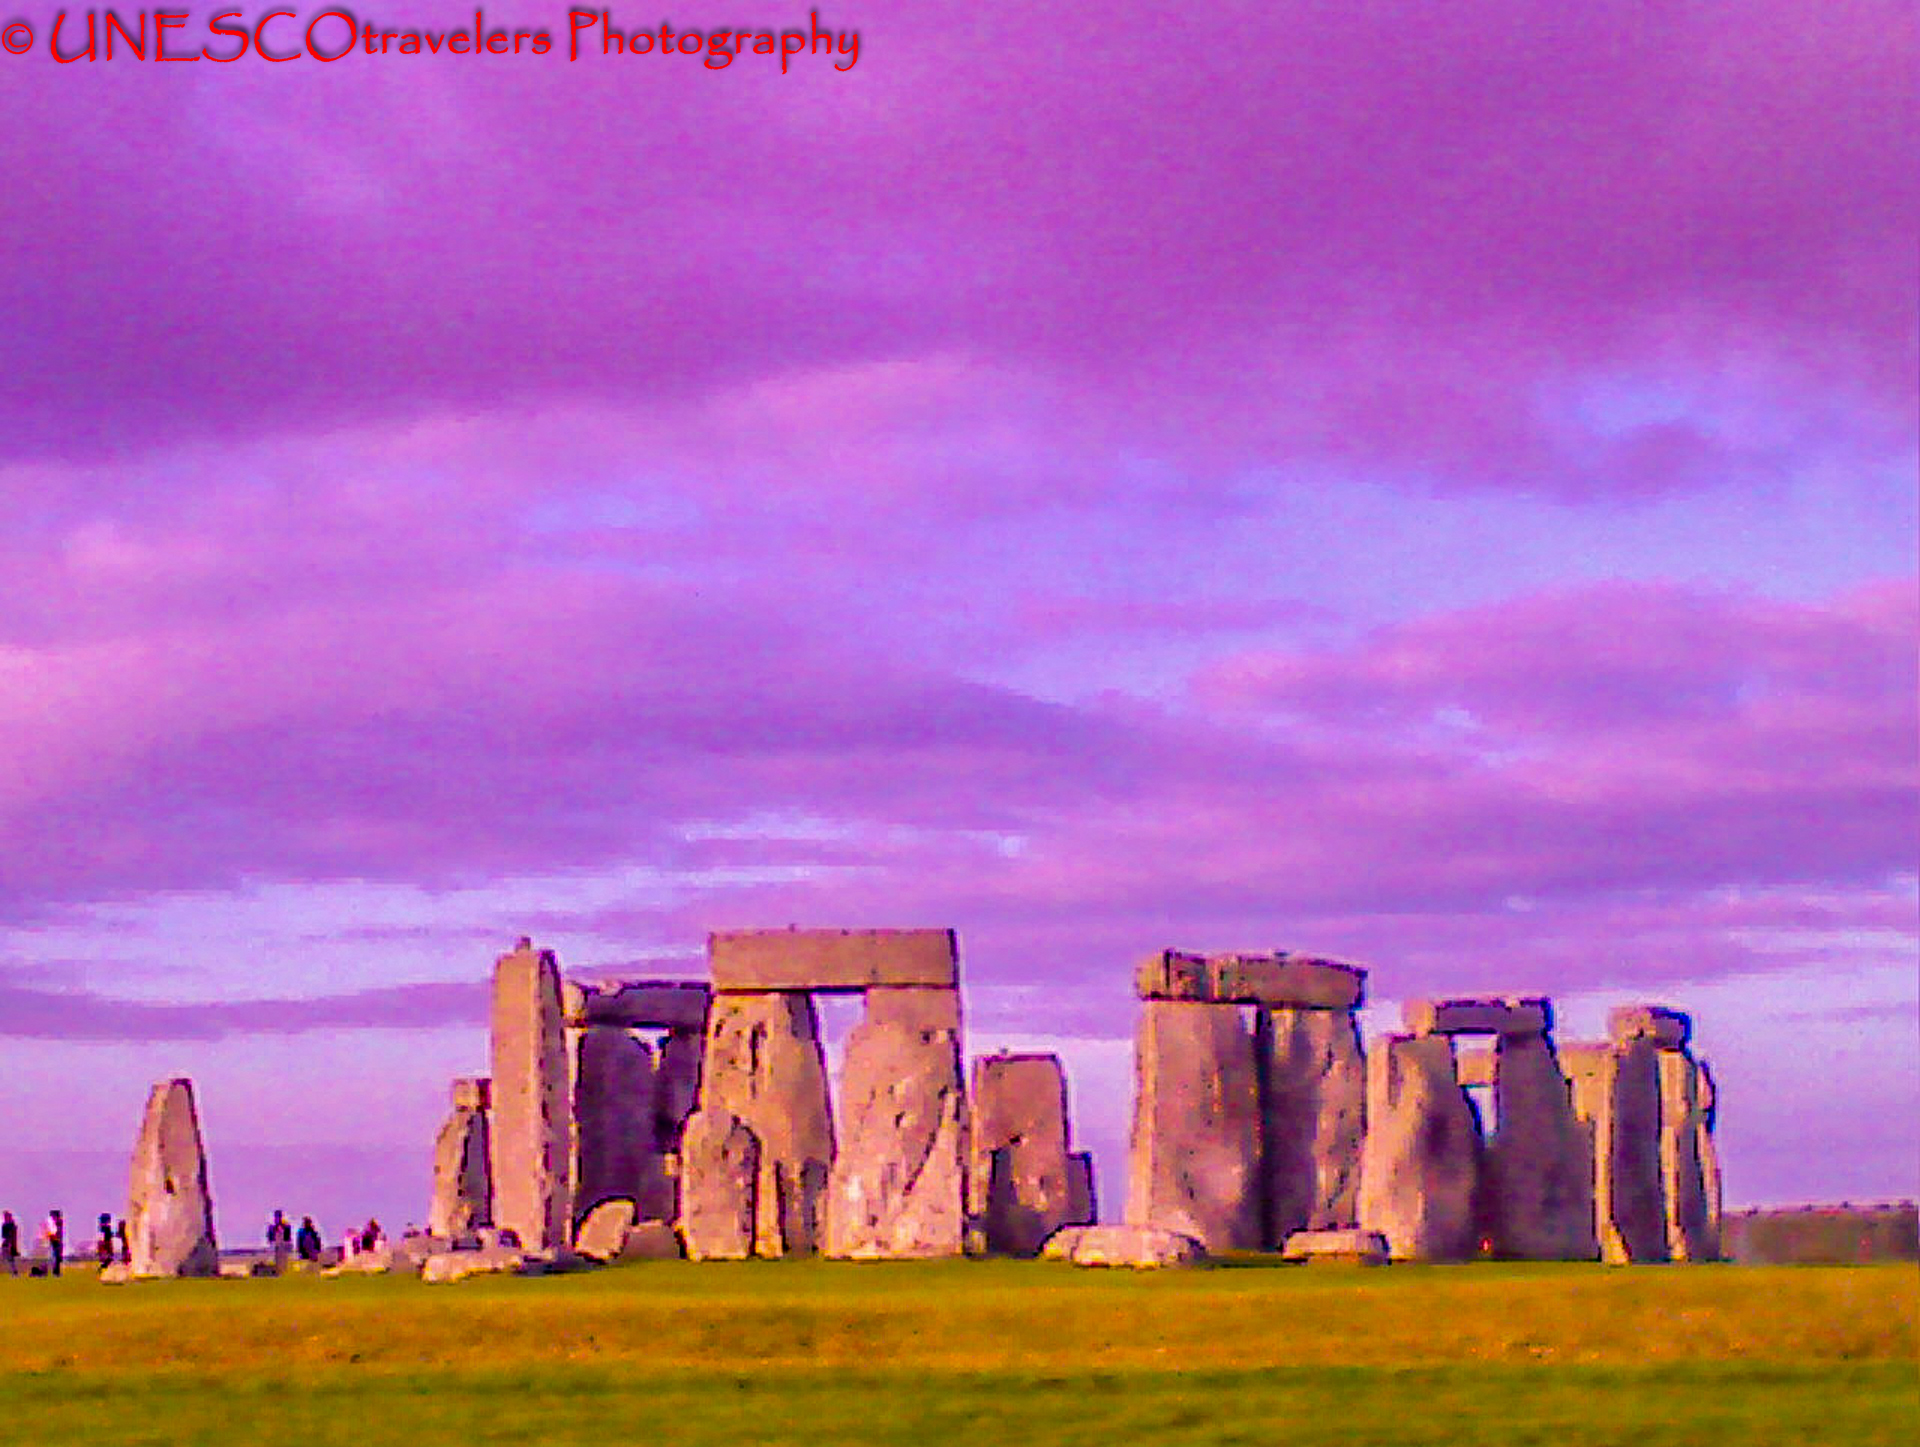 The Monoliths of Stonehenge Stonehenge, Avebury and Associated Sites - United Kingdom of Great Britain and Northern Ireland By UNESCOtravelers